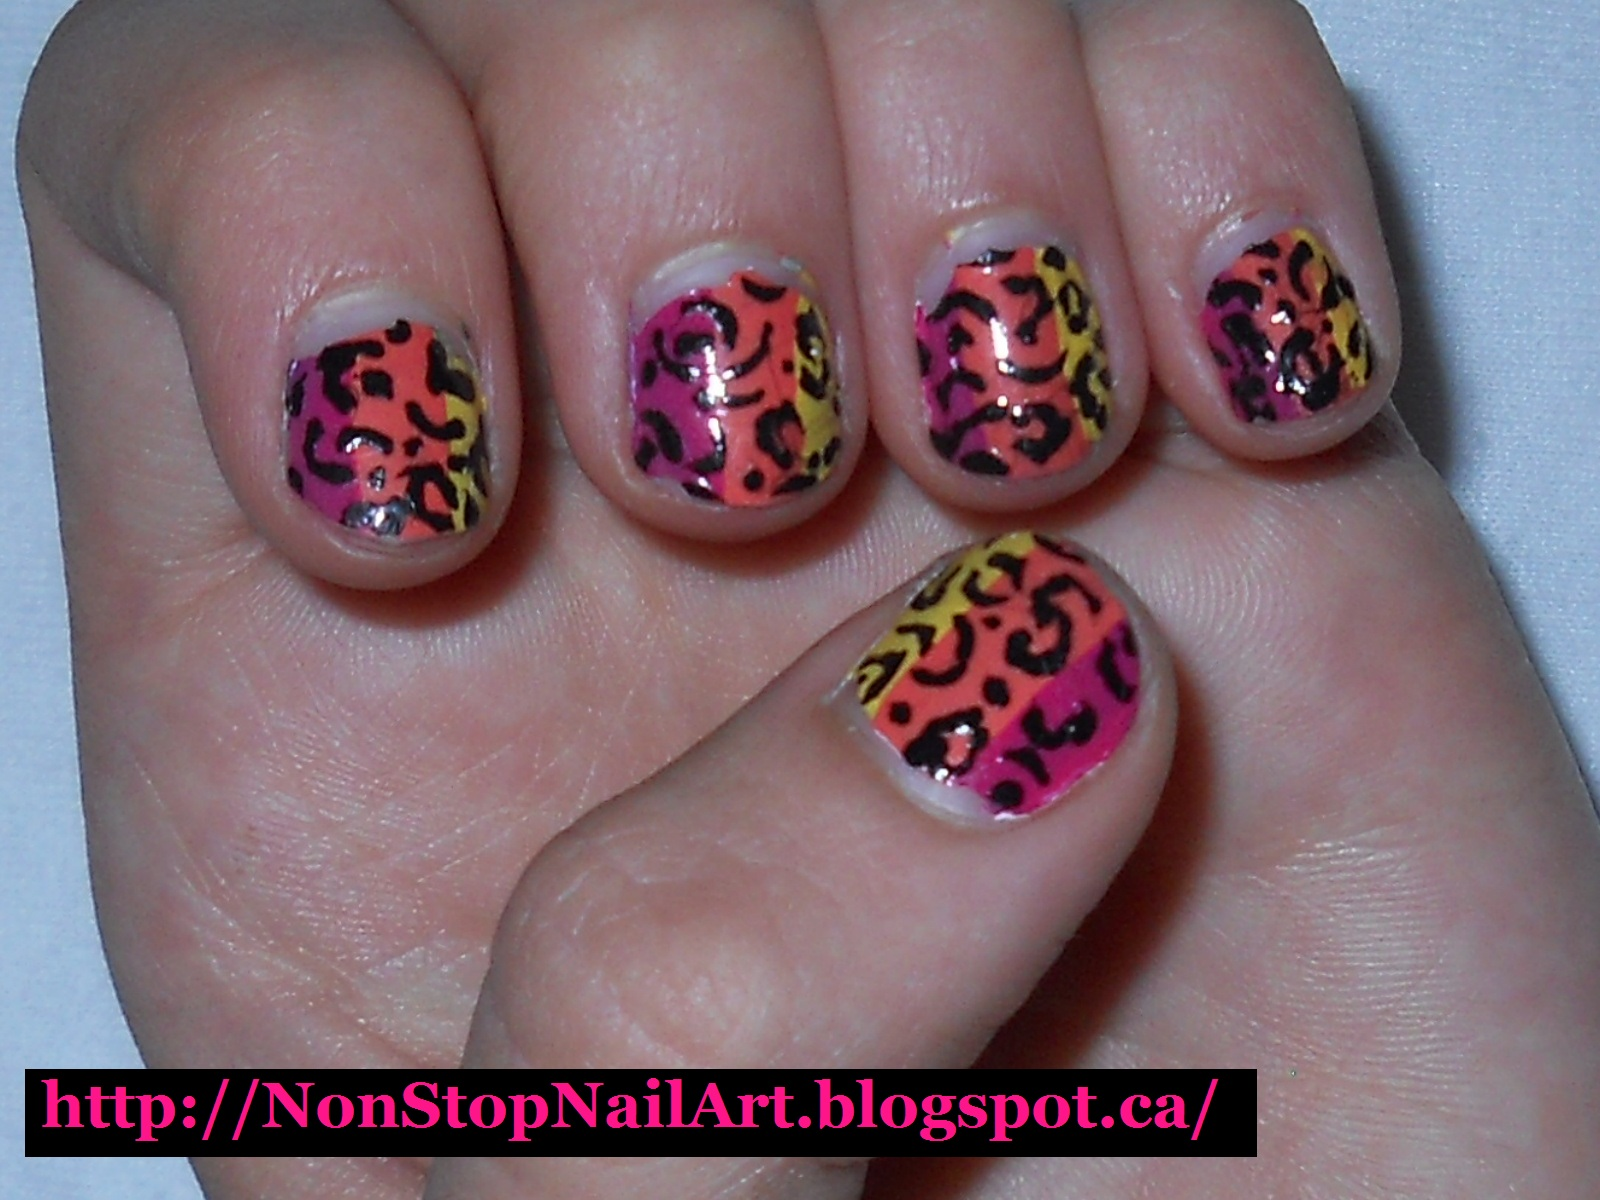 Non-Stop Nail Art: Cheetah print nails!